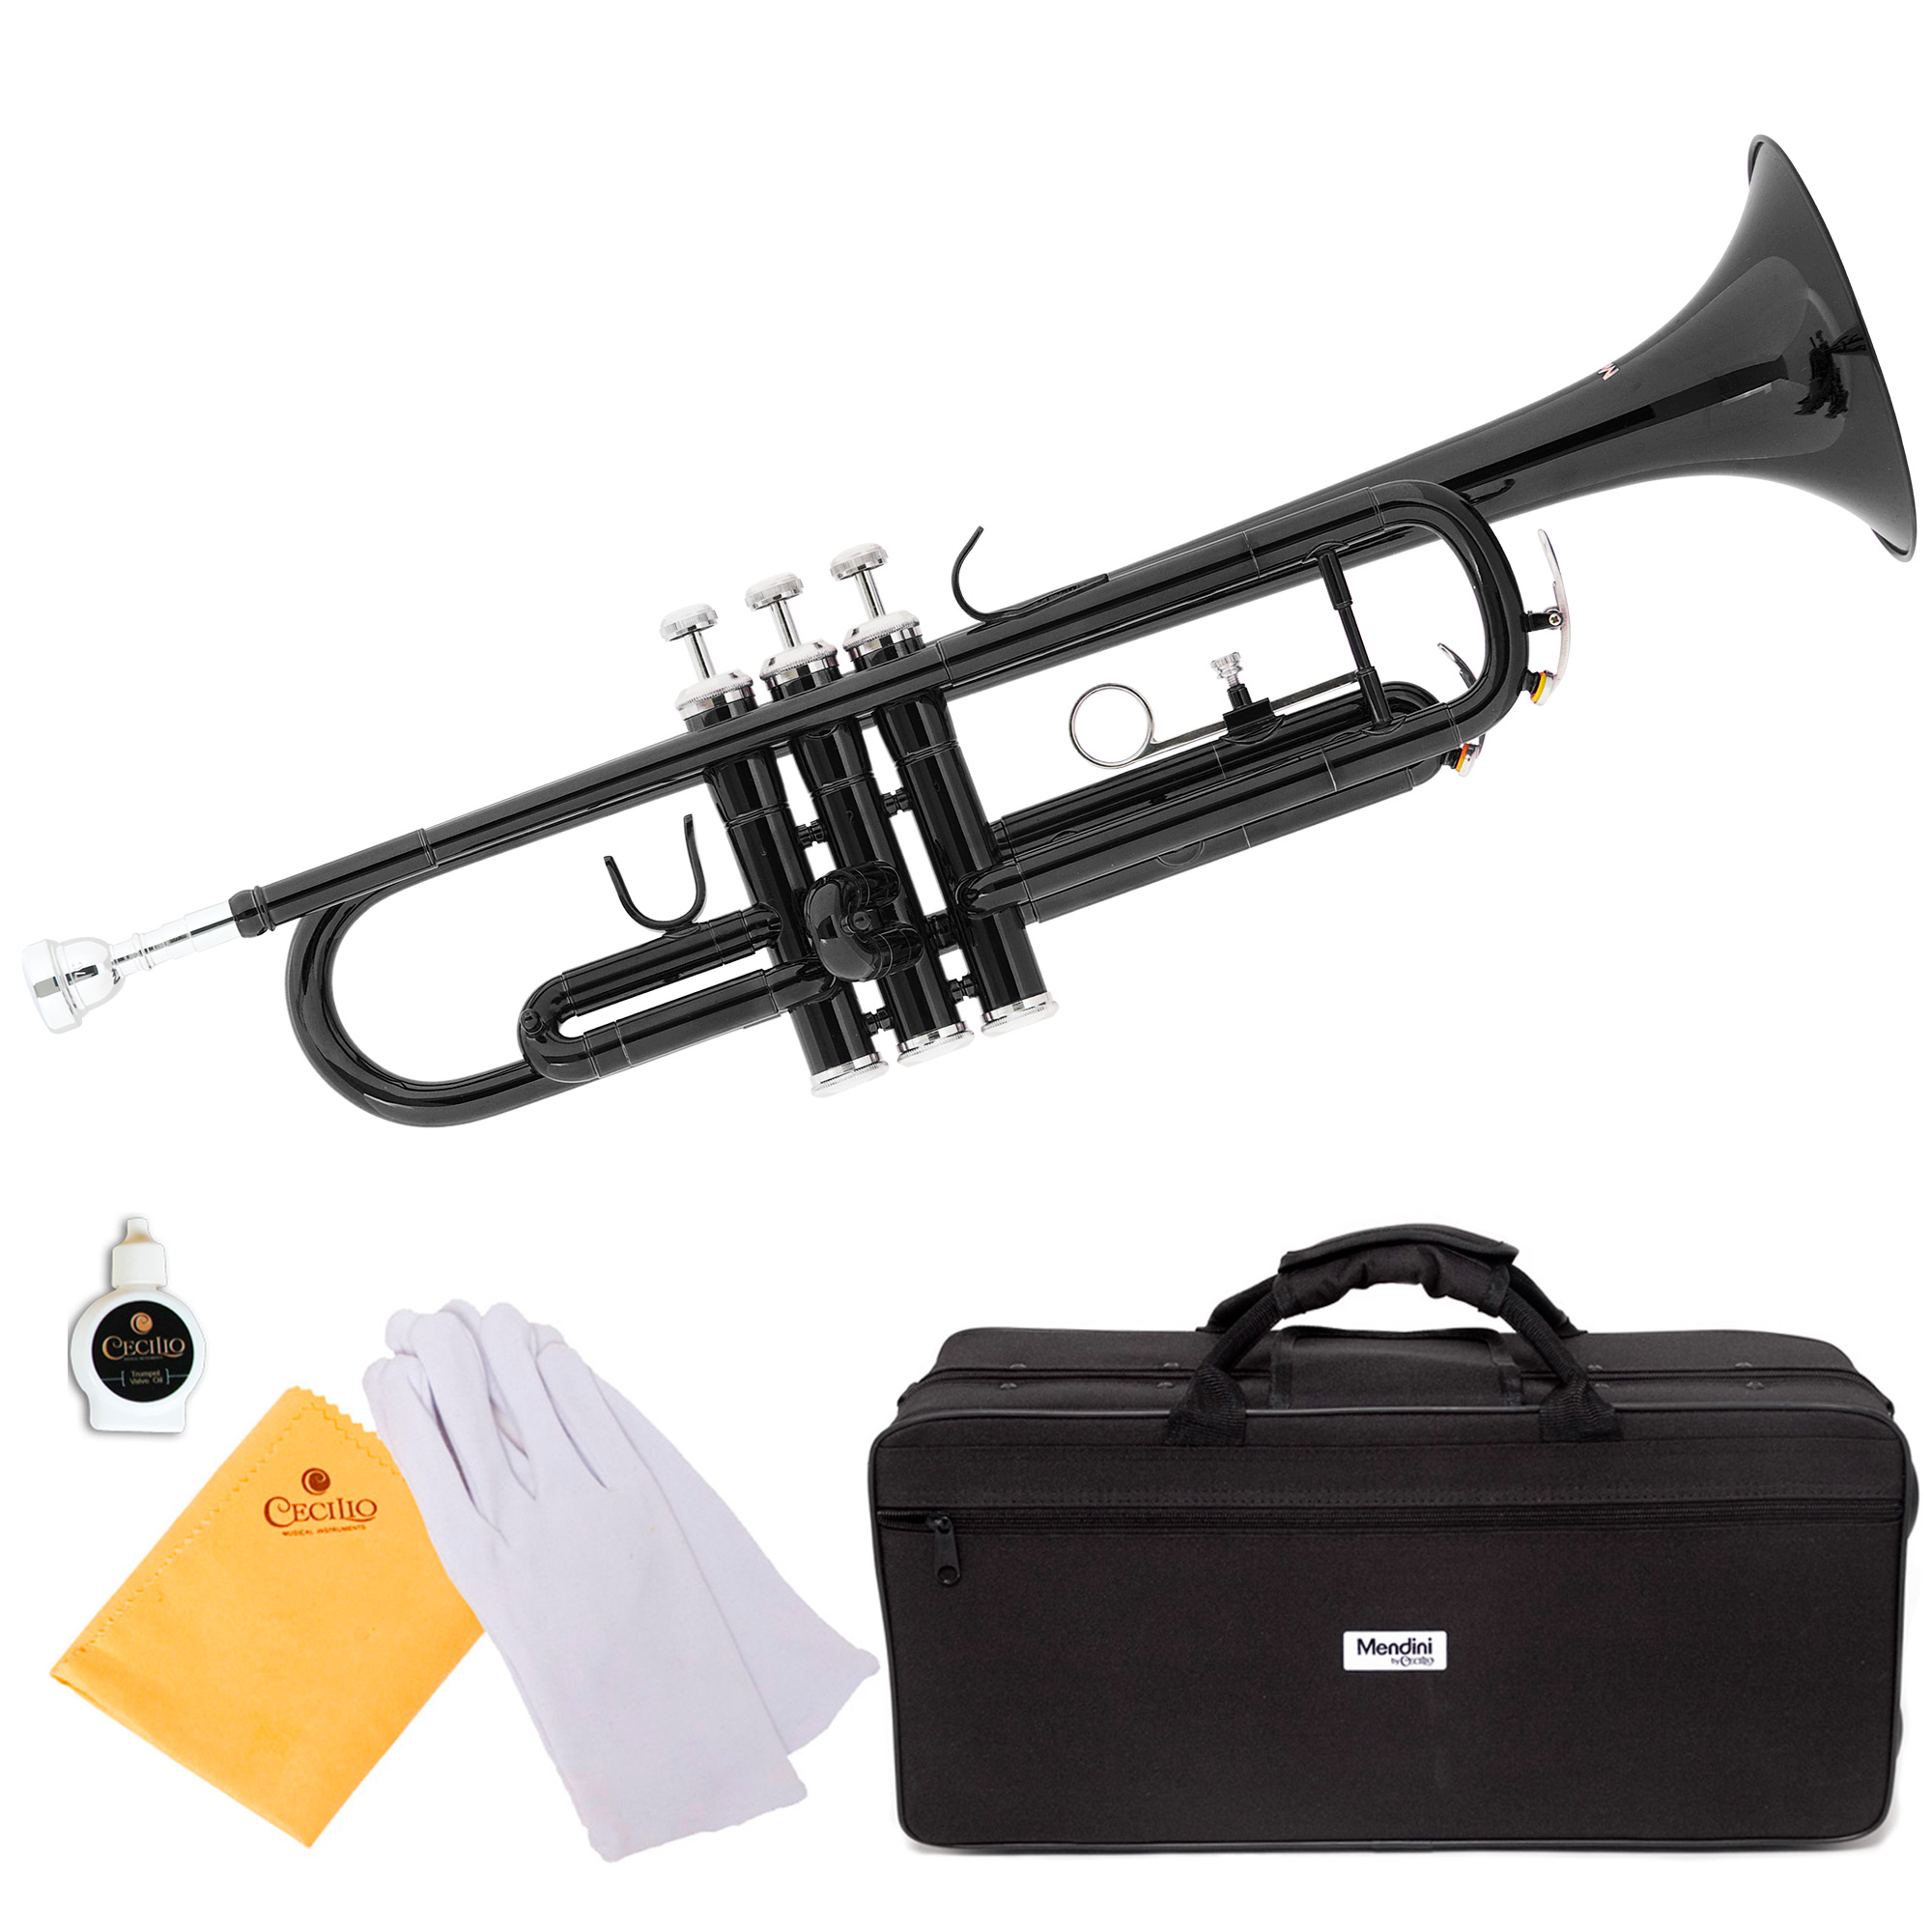 Mendini by Cecilio MTT-BK Black Lacquer Brass Bb Trumpet with Durable Deluxe Case and 1 Year Warranty